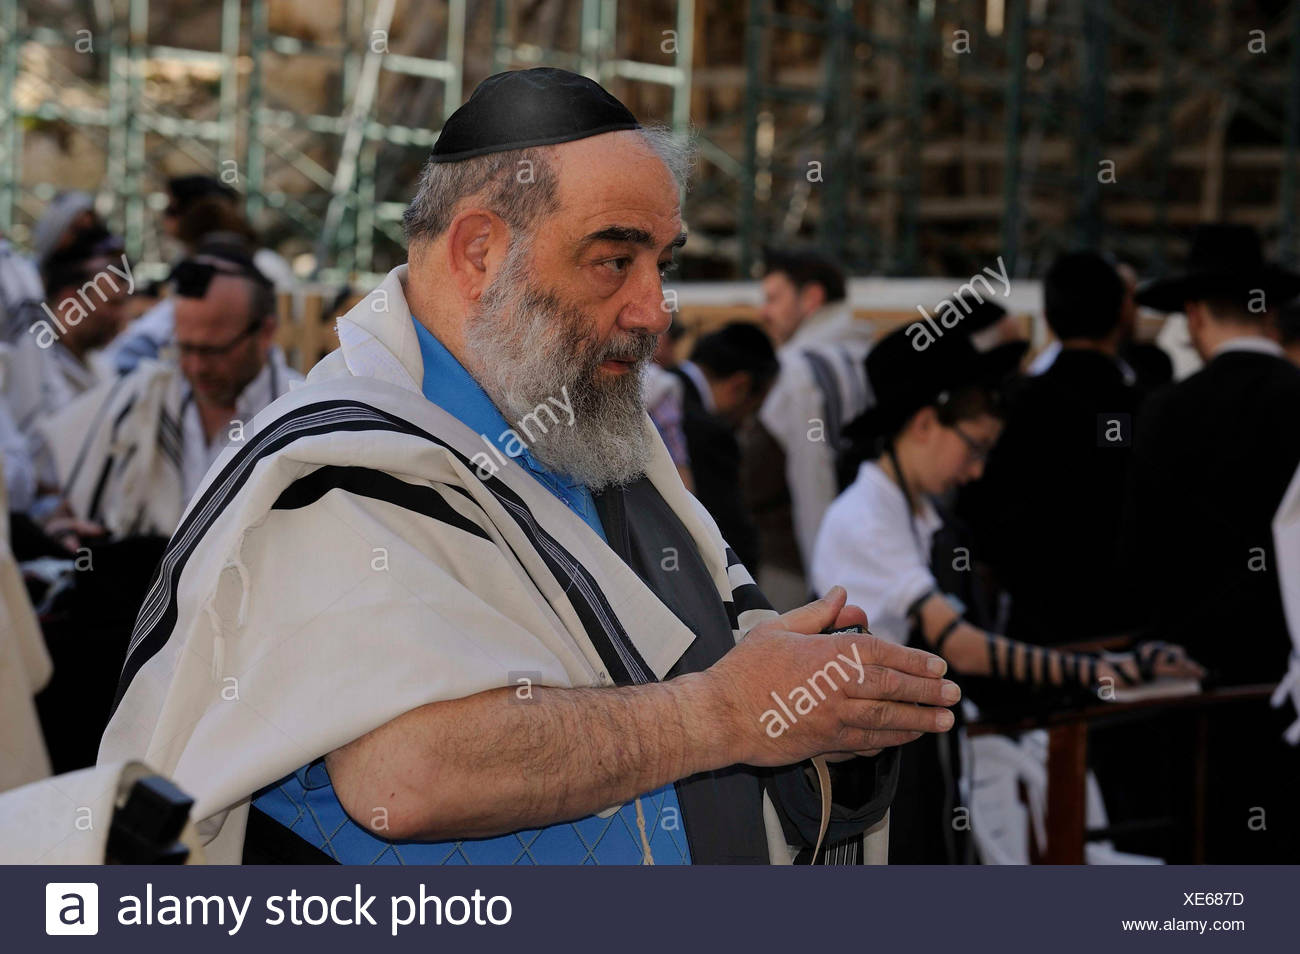 Praying Jew at the Wailing Wall or Western Wall, with kippah and tallin, prayer shawl, over his shoulders, Muslim Quarter - Stock Image